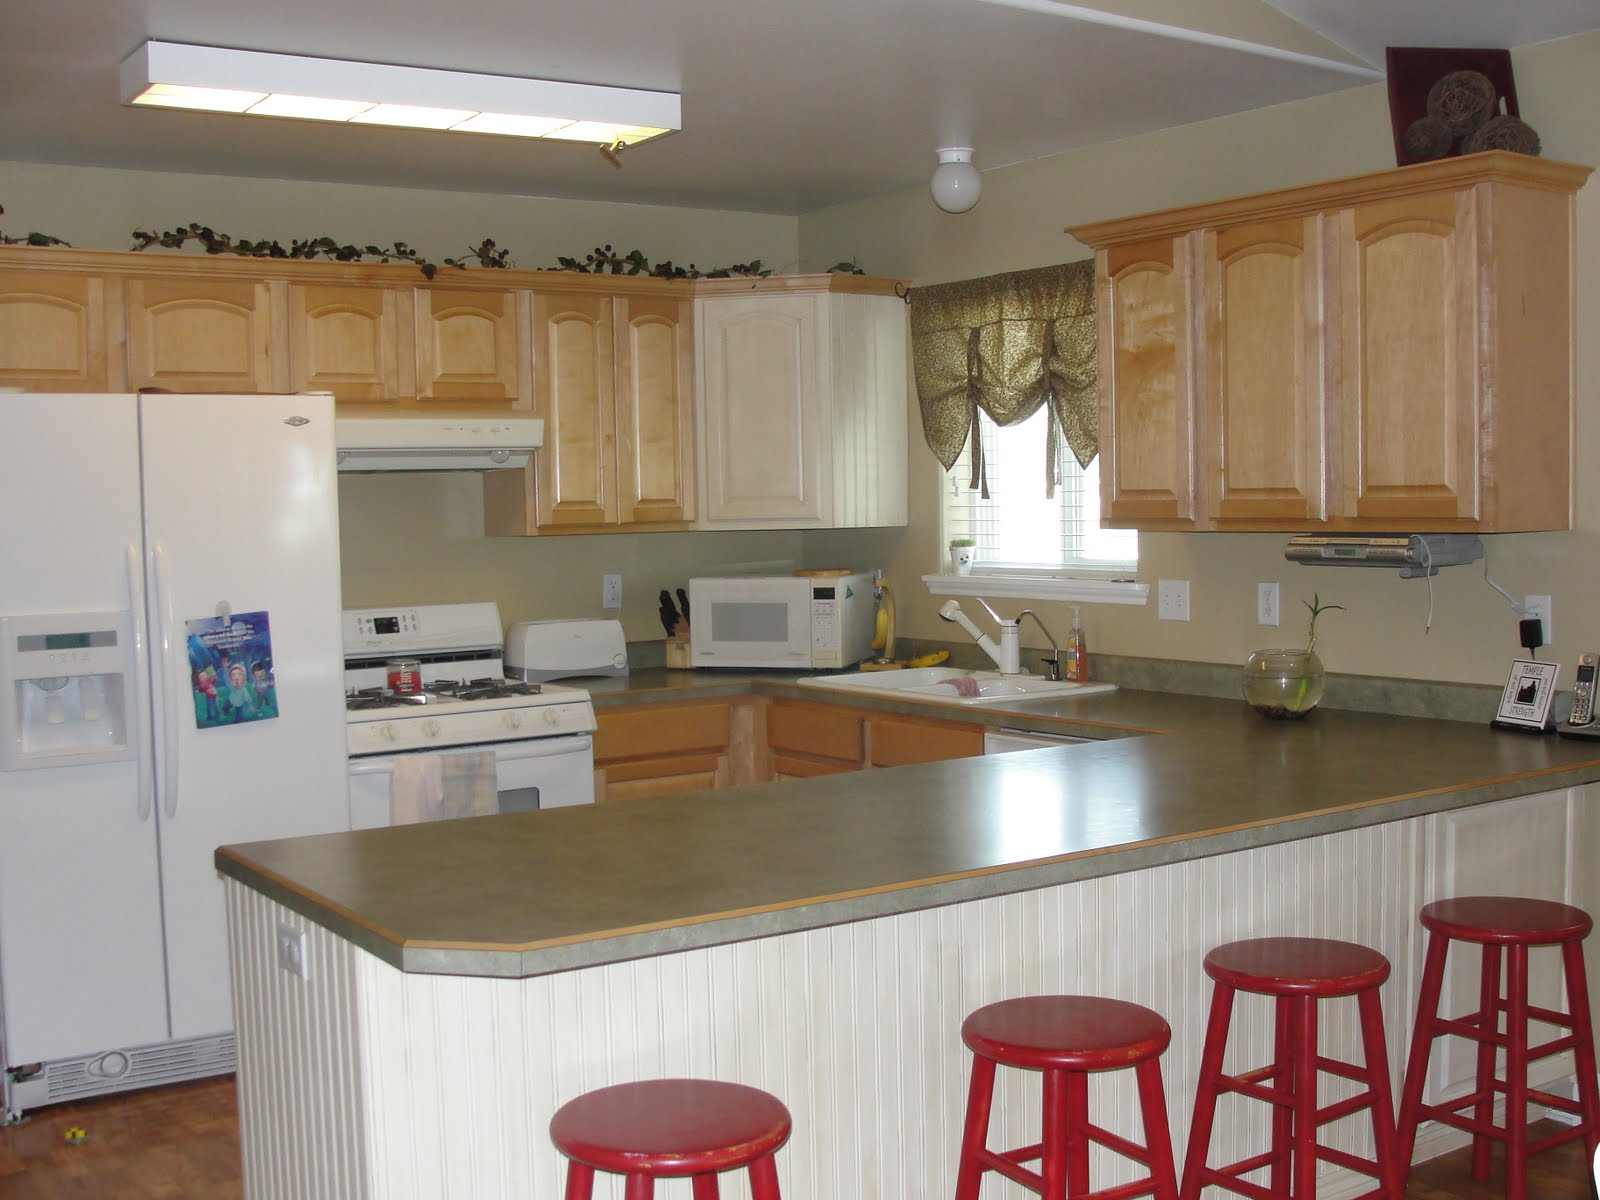 gerber daisies and giggles diy kitchen cabinet facelift give your kitchen cabinets a facelift